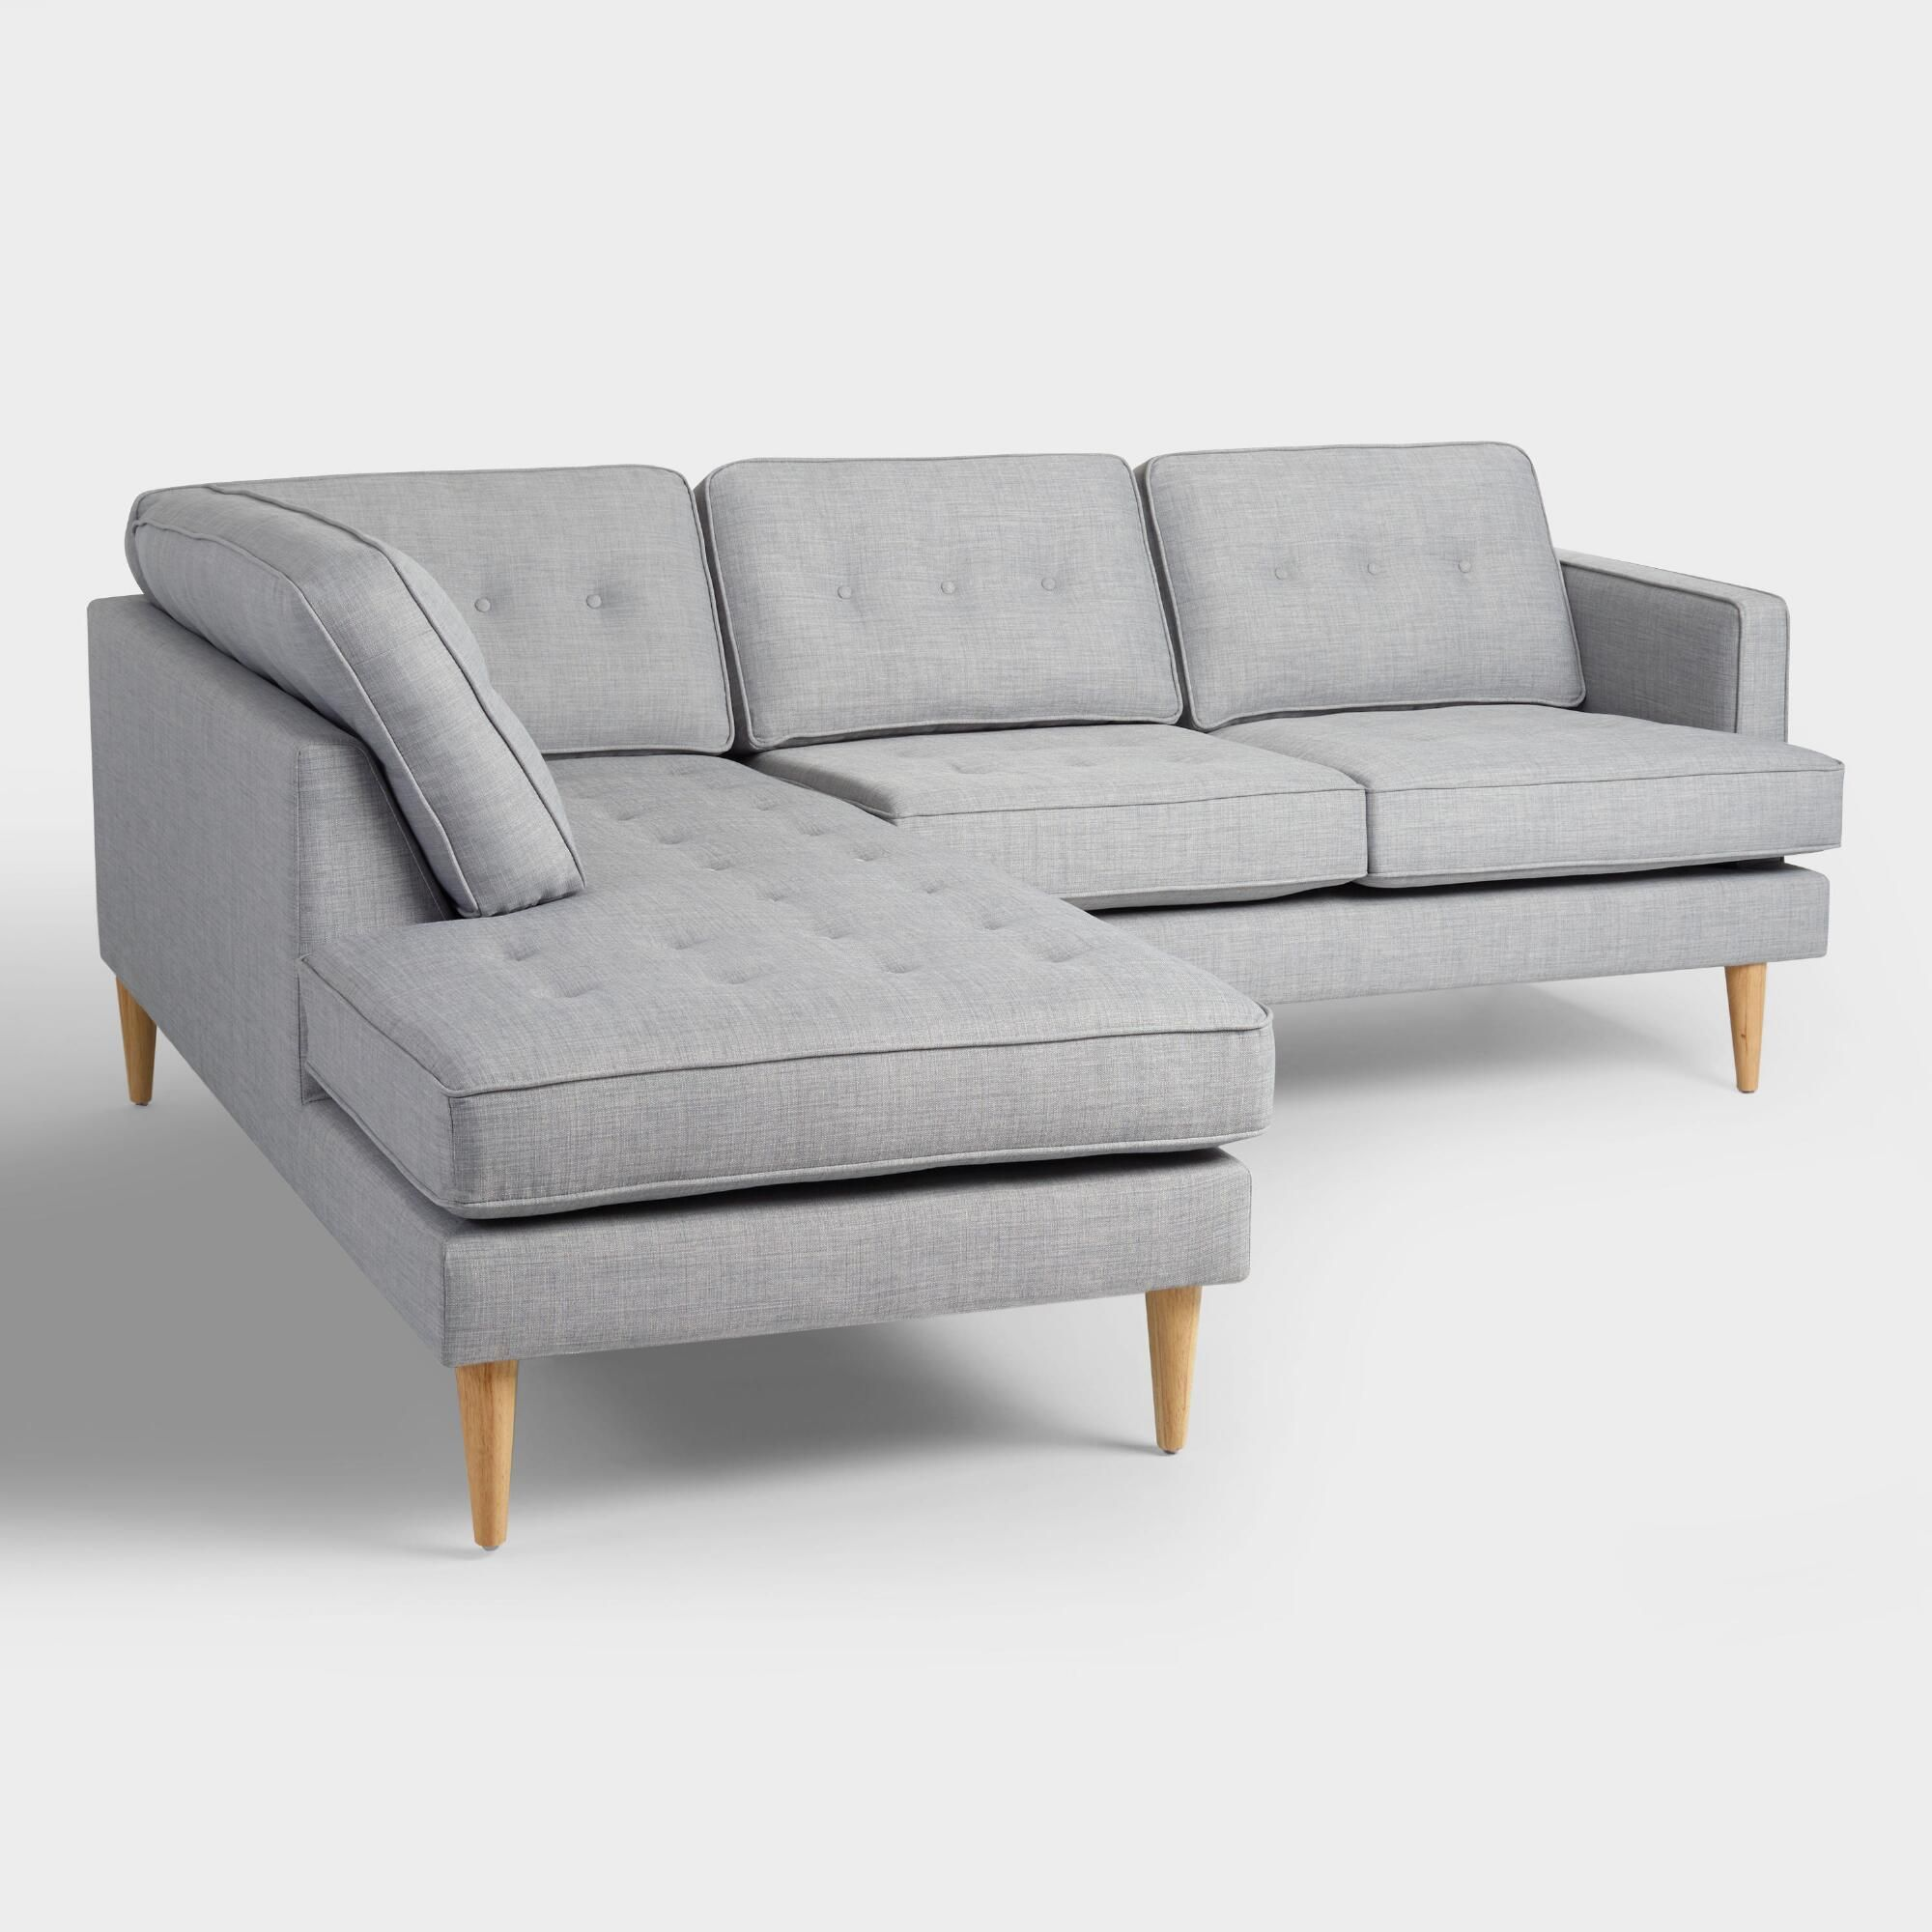 Surprising Dove Gray Woven Apel Sectional Sofa With Chaise By World Gmtry Best Dining Table And Chair Ideas Images Gmtryco